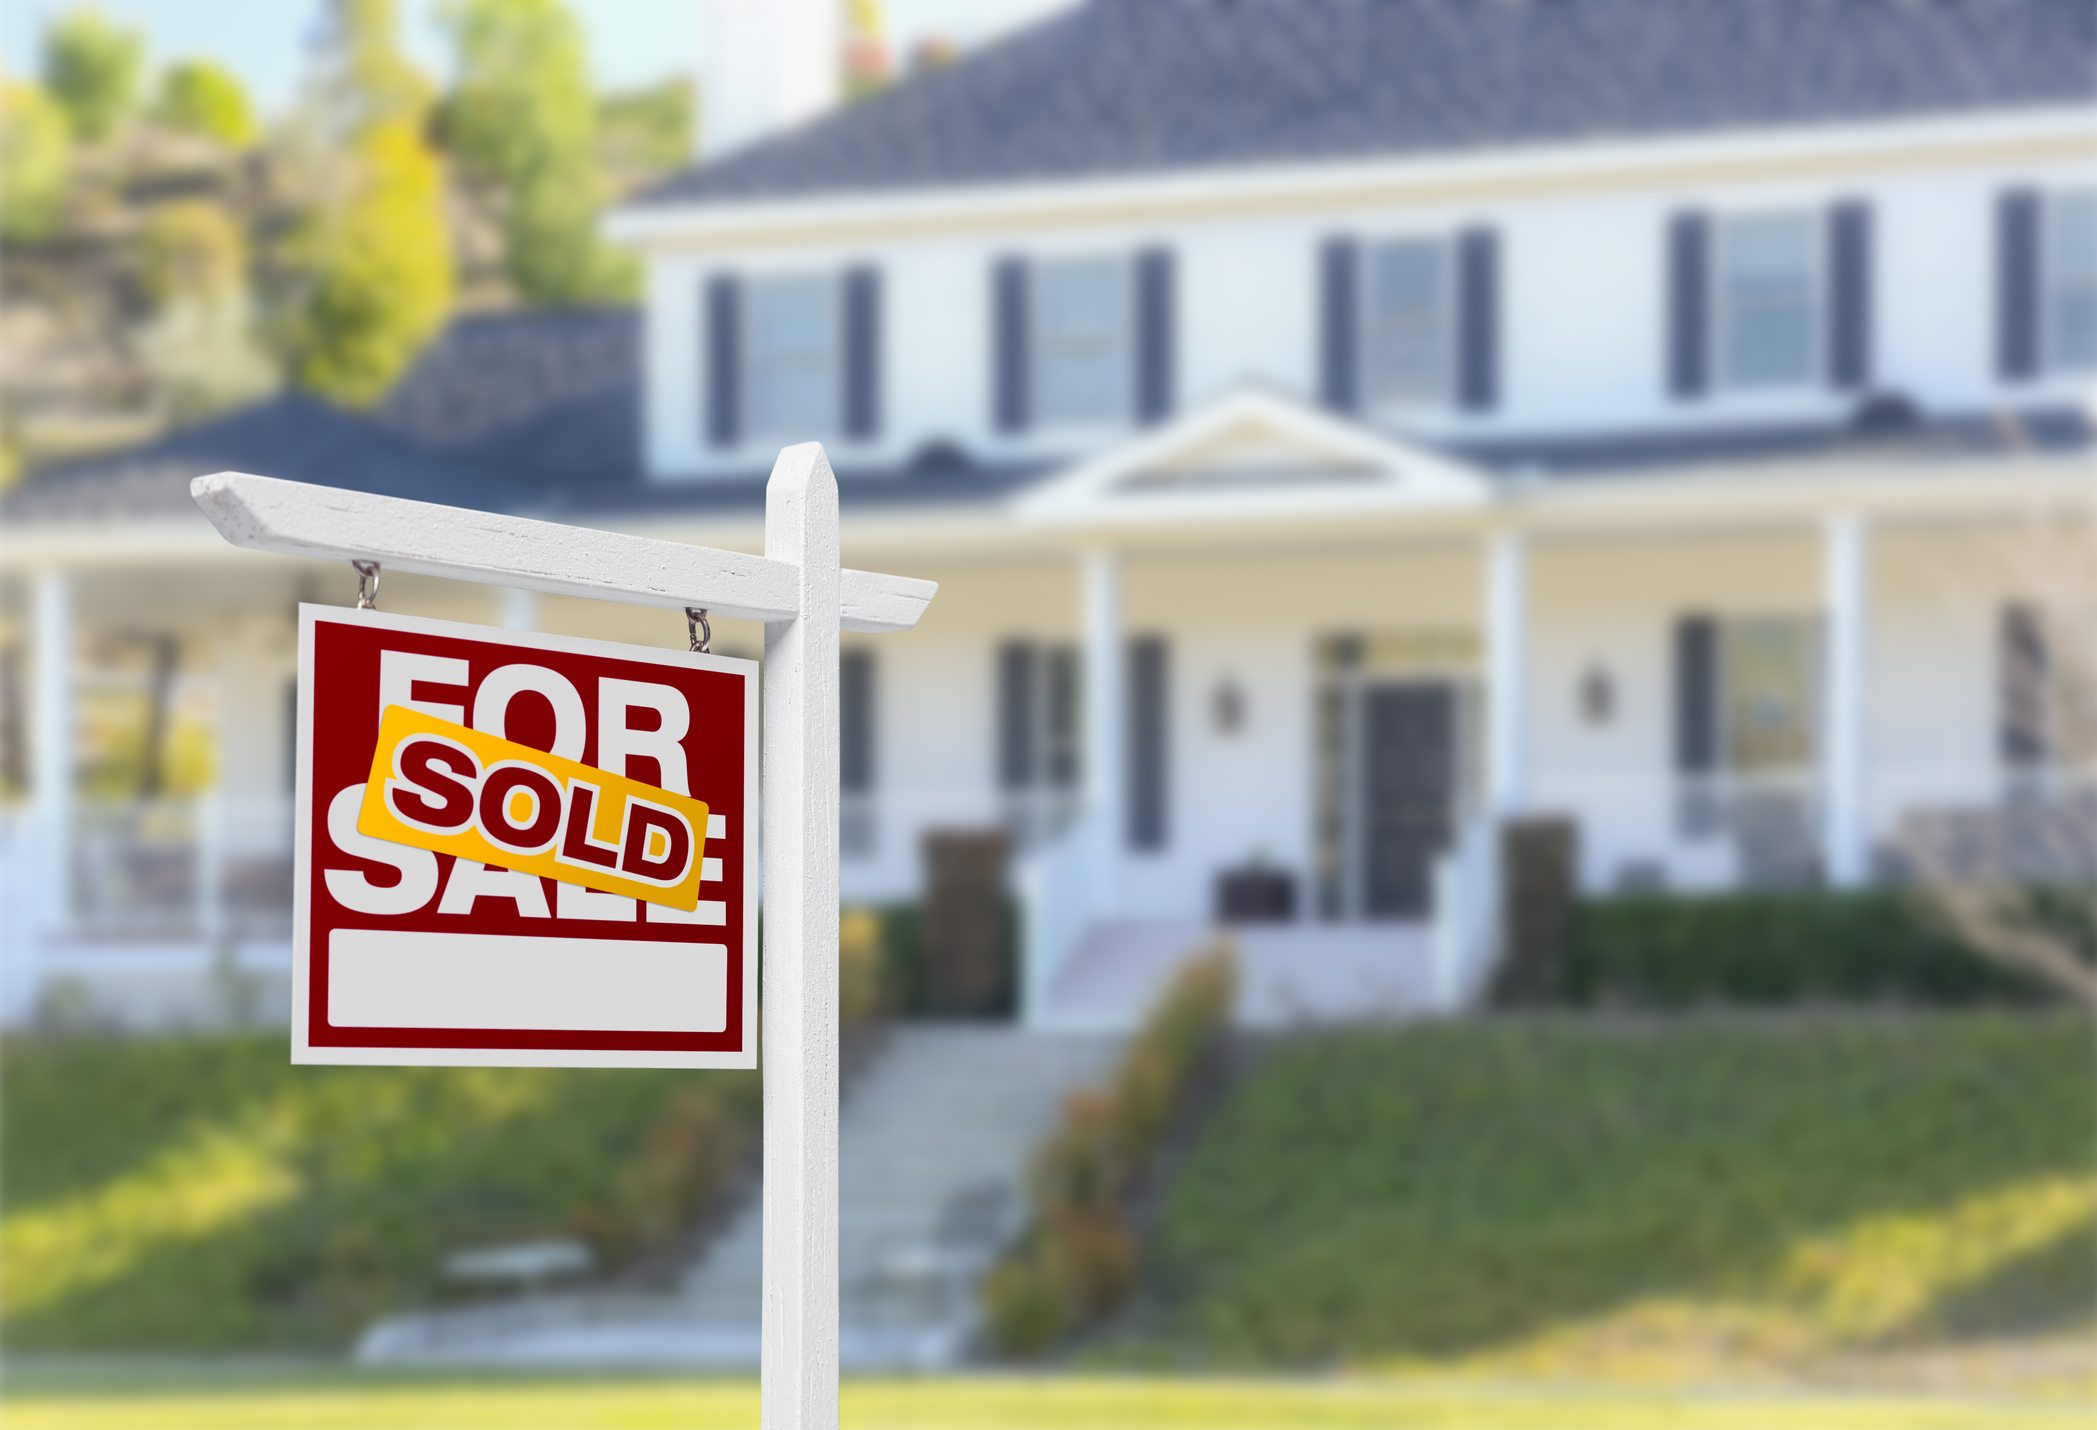 For Sale Sold Sign: The Costly Mistake Too Many Homebuyers Make After Watching